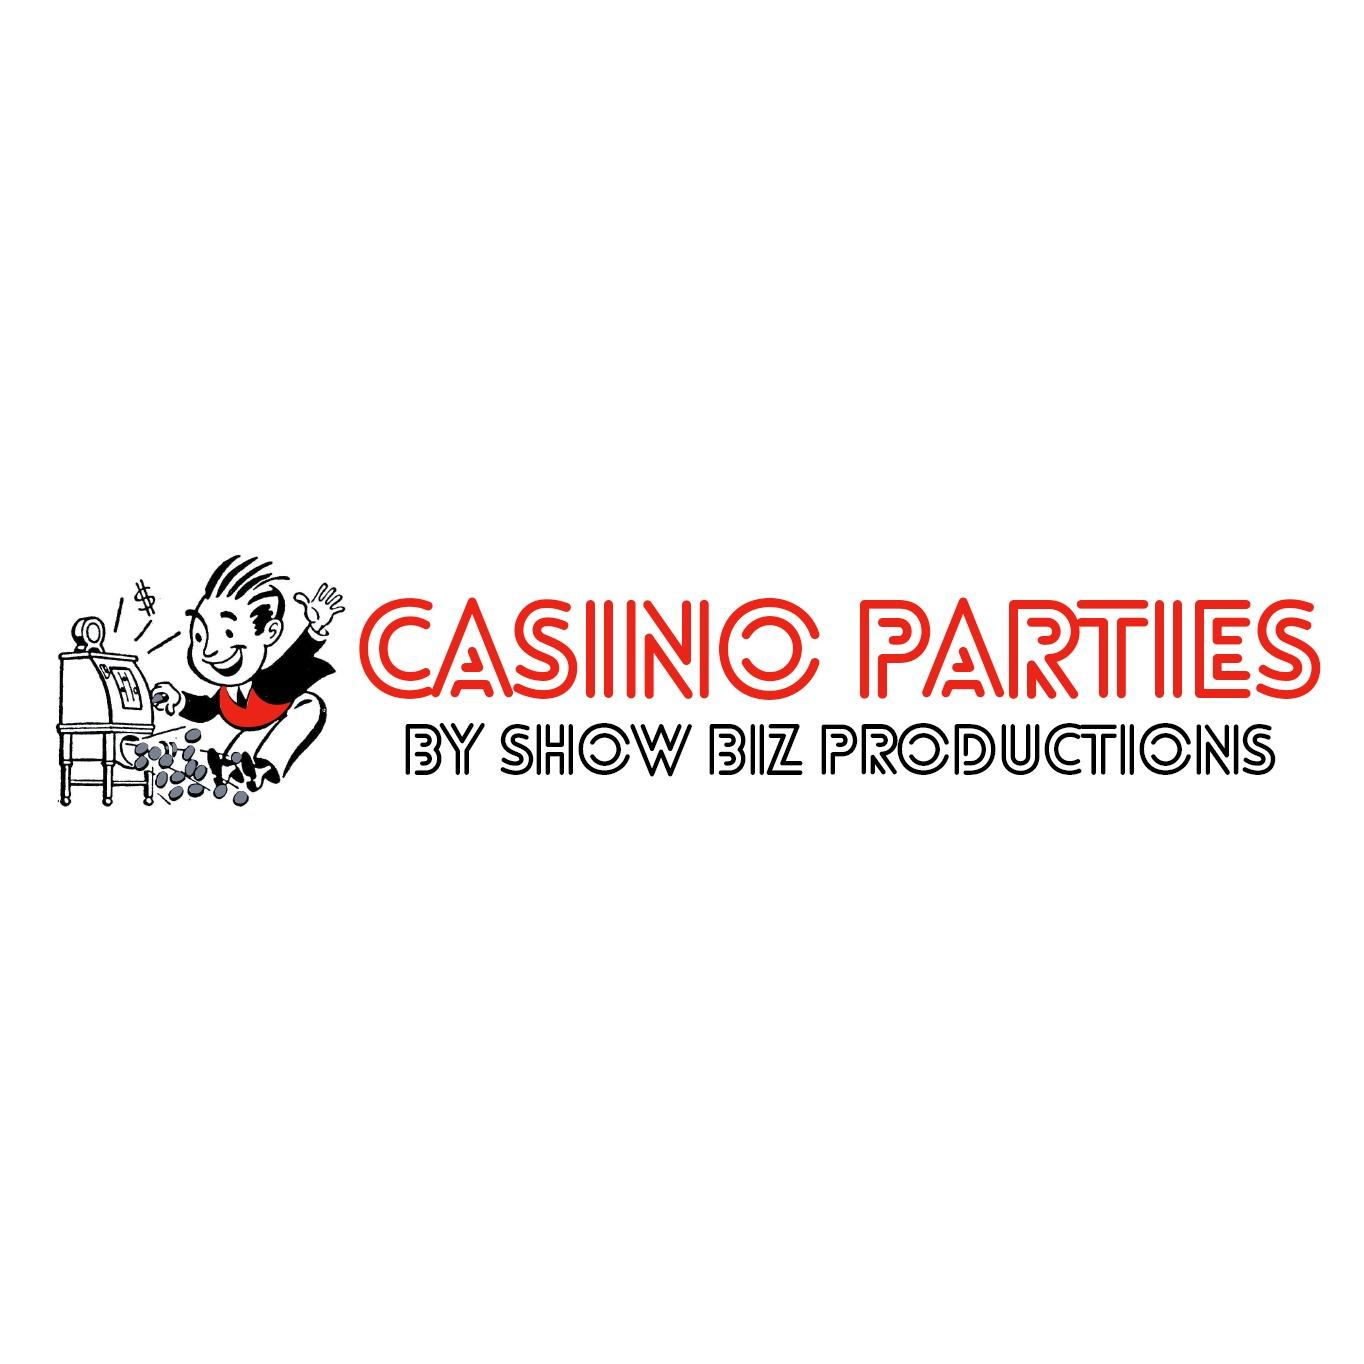 Casino Parties by Show Biz Productions